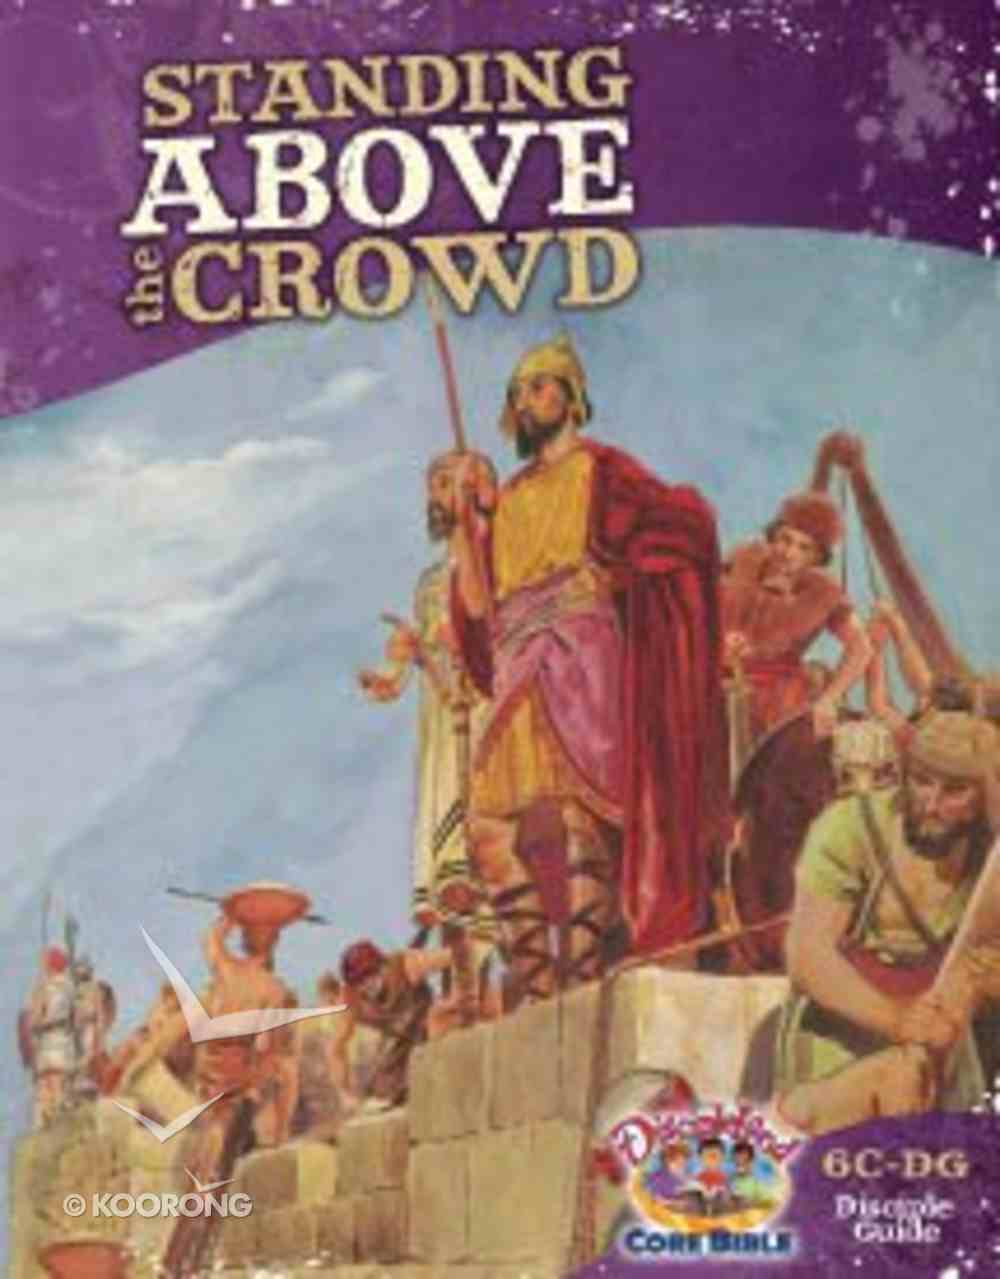 Dlc C6: Walking With God Student's Guide Ages 11-14 (Standing Above the Crowd) (Discipleland Level 6, Ages 11-14, Qtrs Abcd Series) Paperback